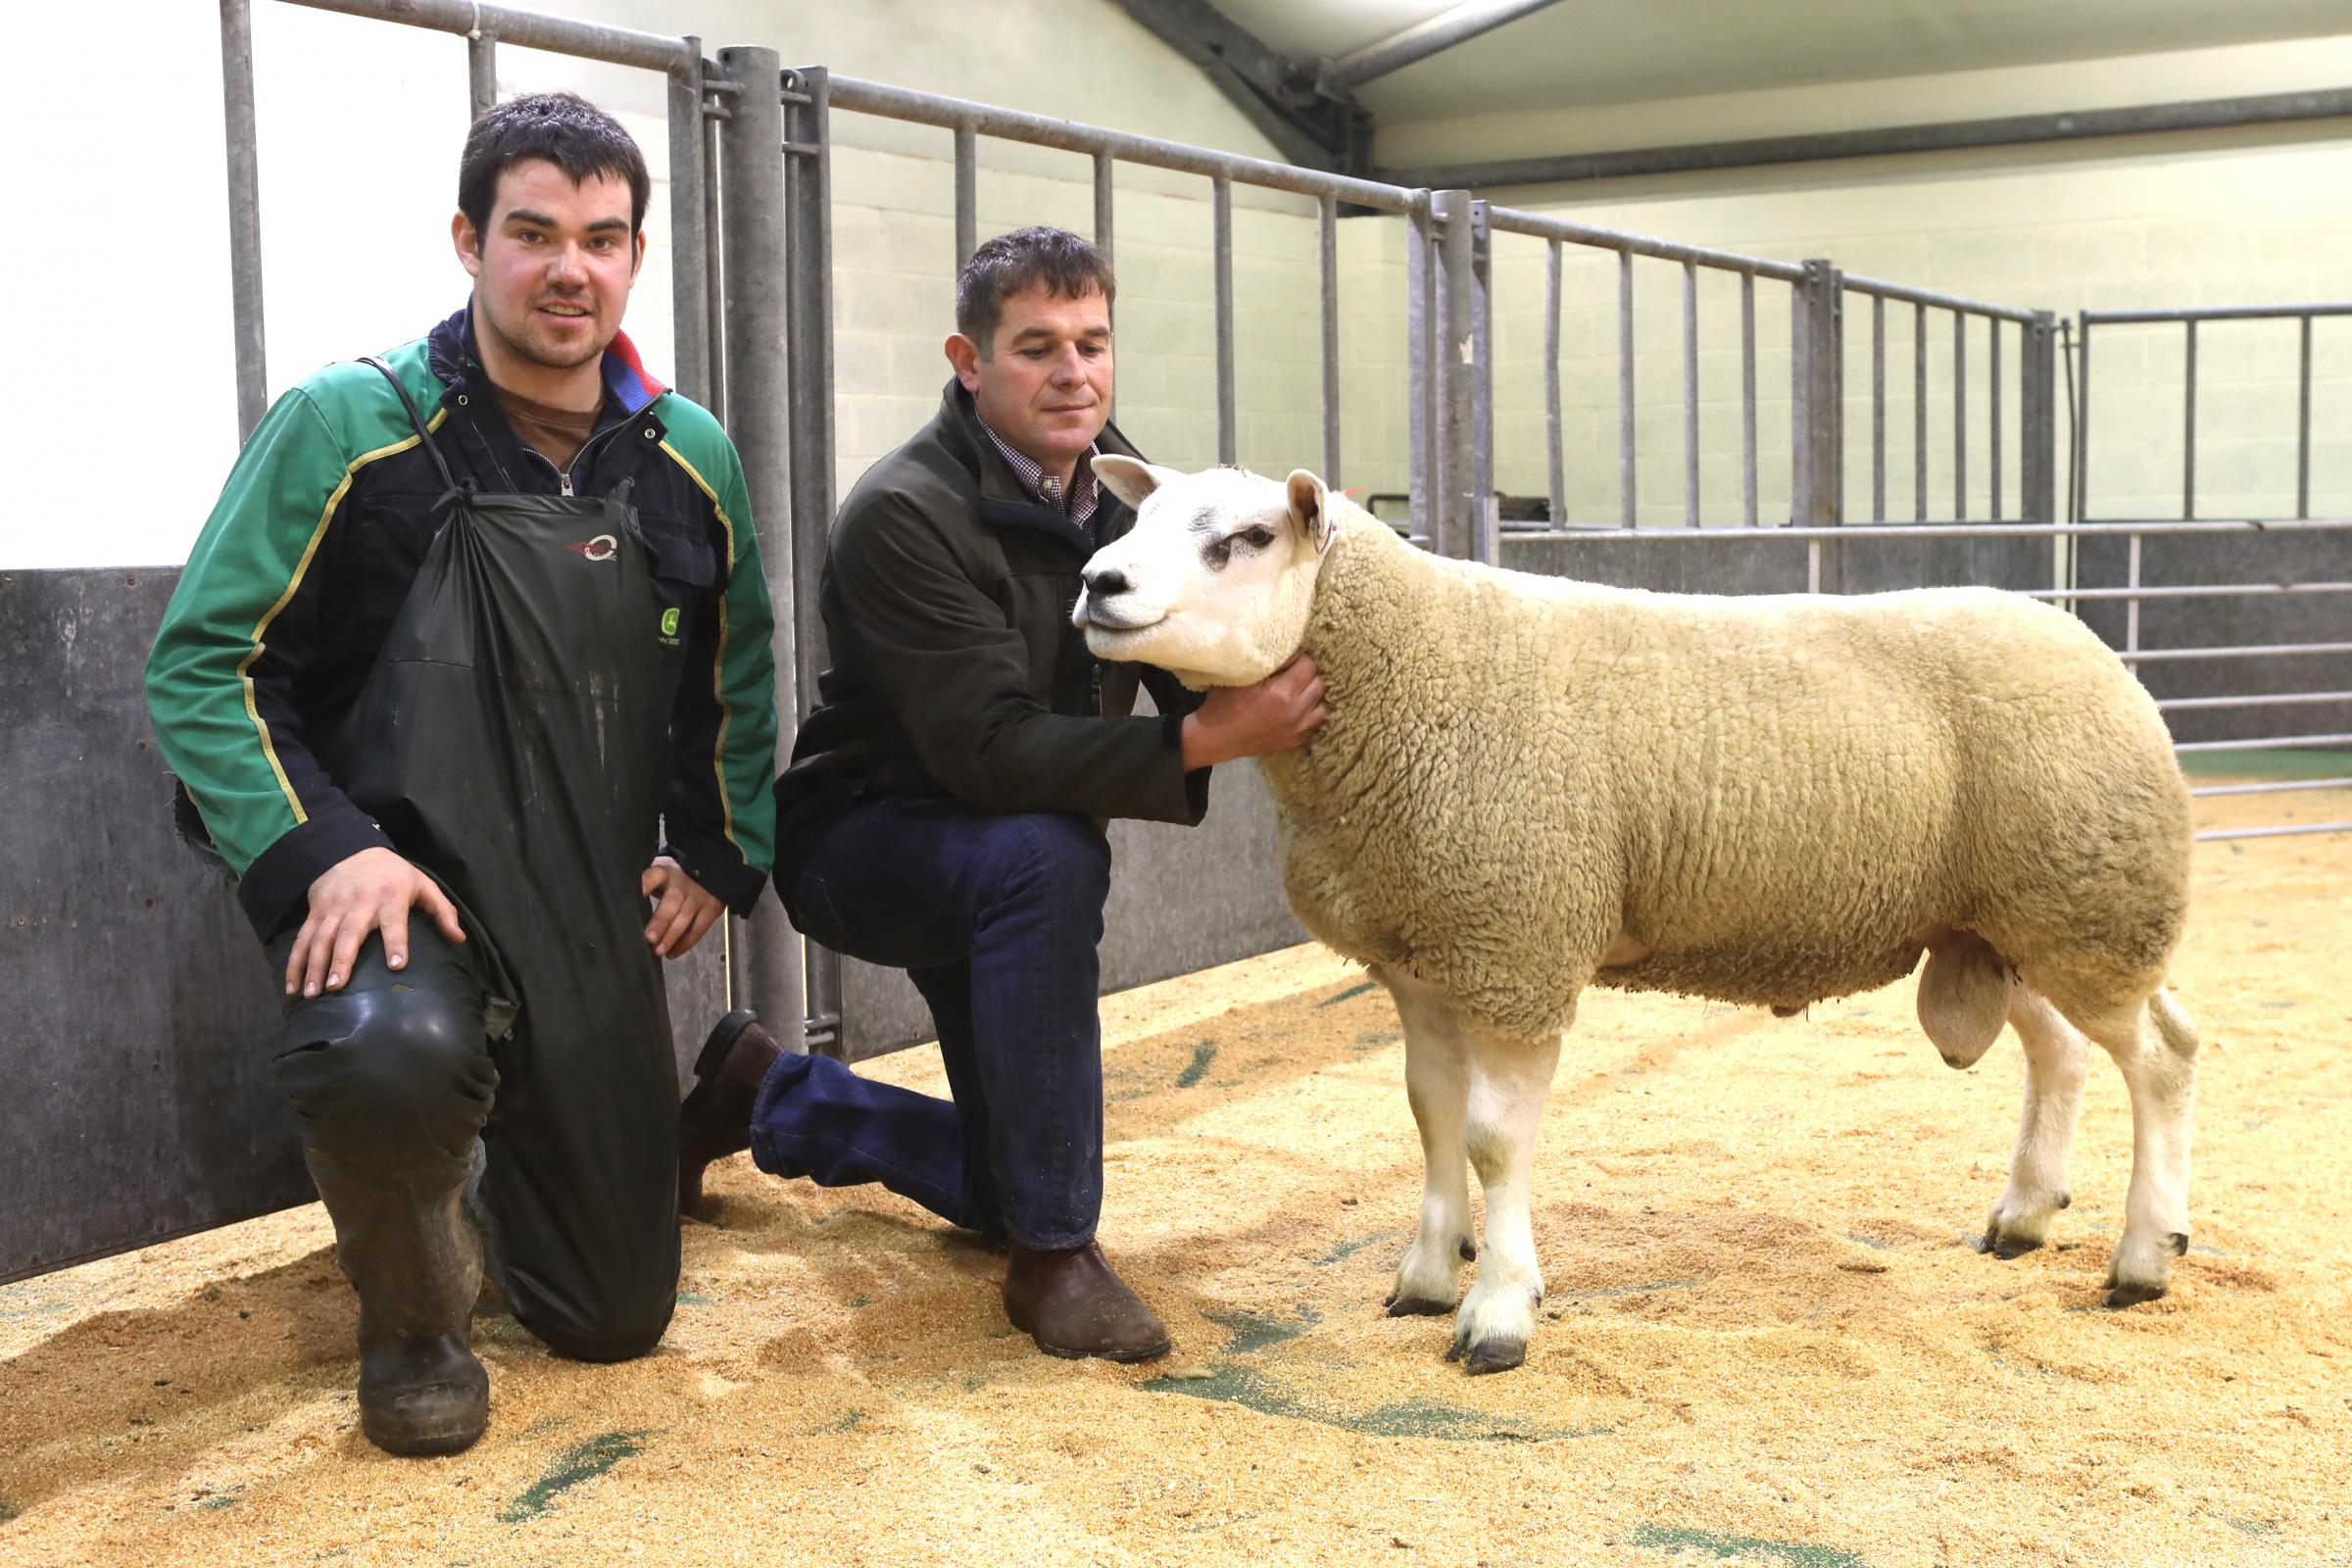 This Texel shearling from Veltigar, Tankerness, sold for a new centre record price of £2200 to Robert and Hazel McNee, Over Finlarg, Tealing, Dundee, at Orkeny Auction Mart